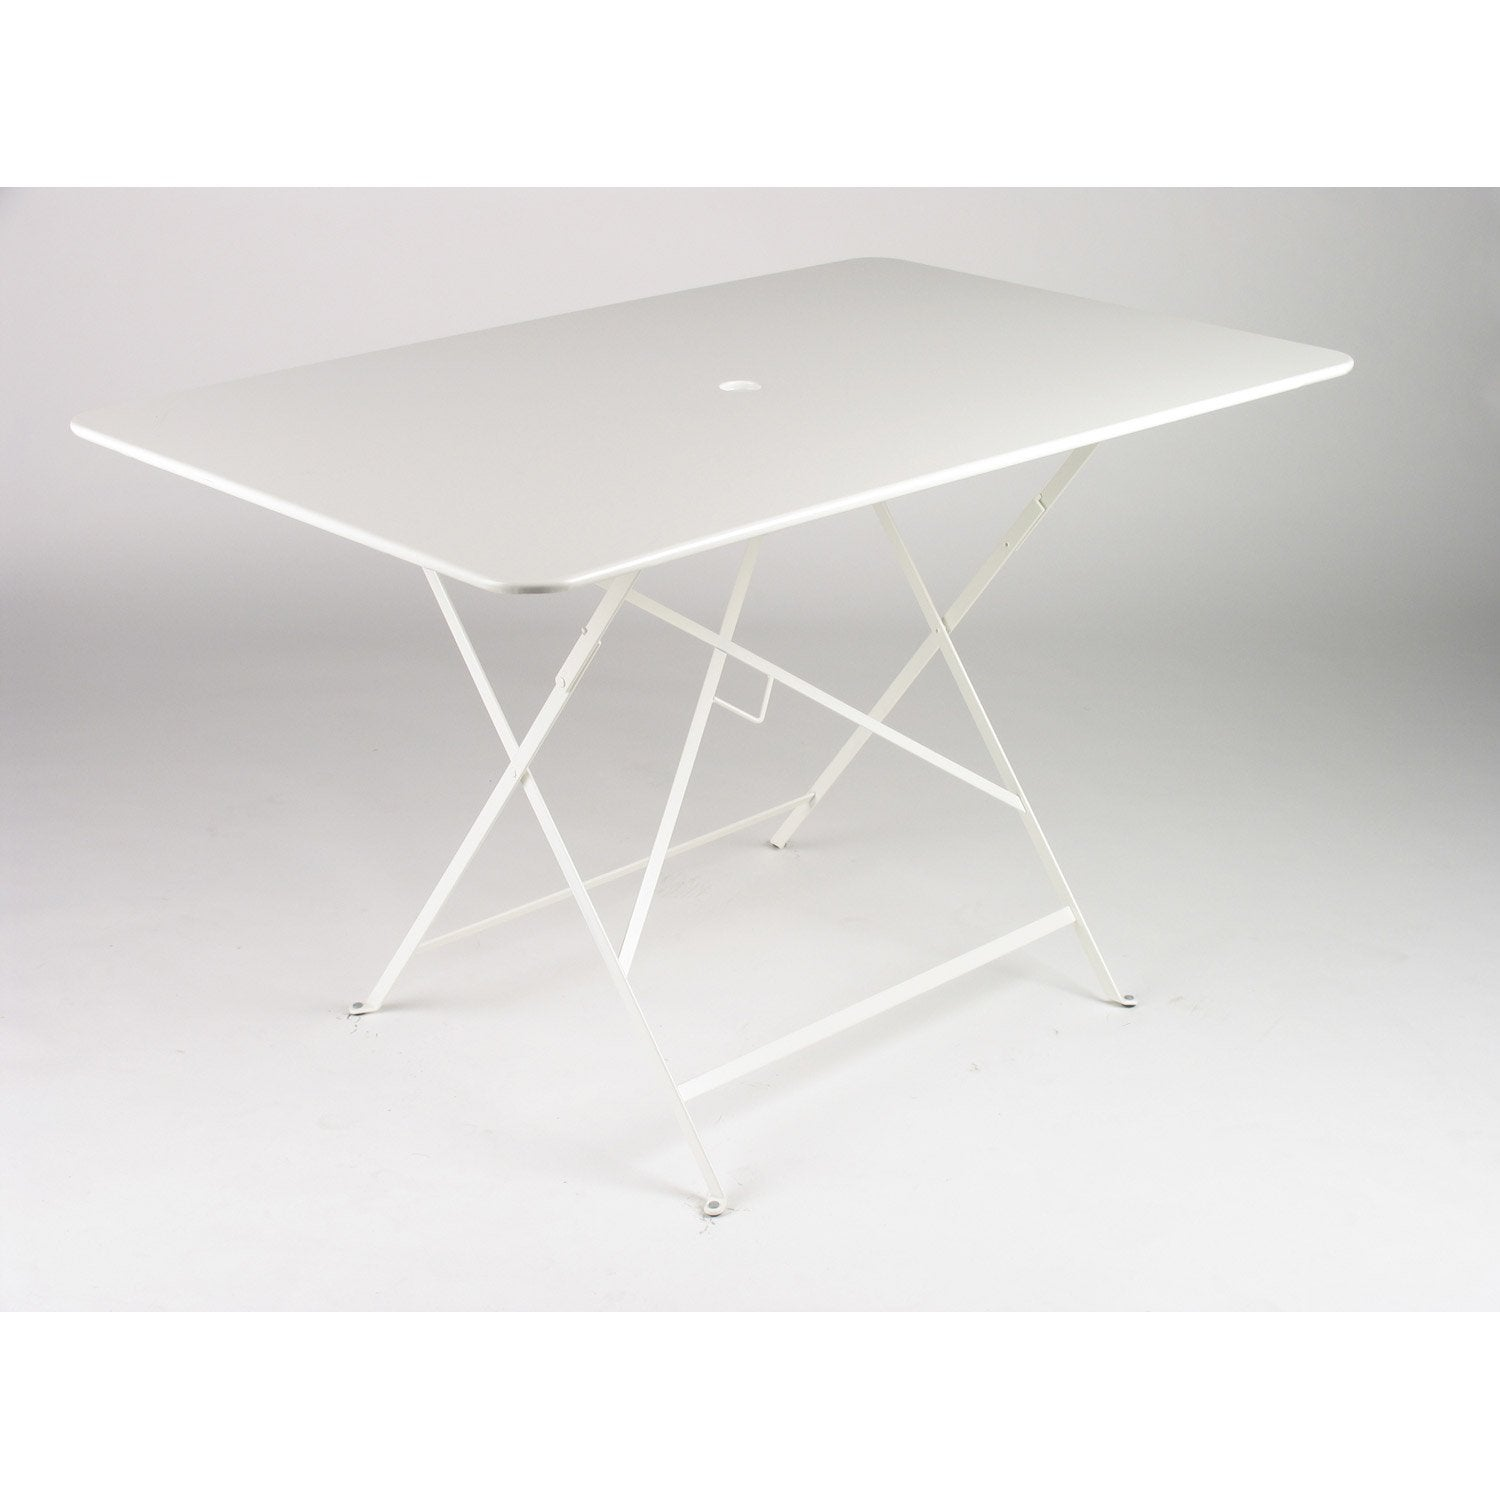 Emejing Table De Jardin Rectangulaire Blanc Contemporary Awesome ...